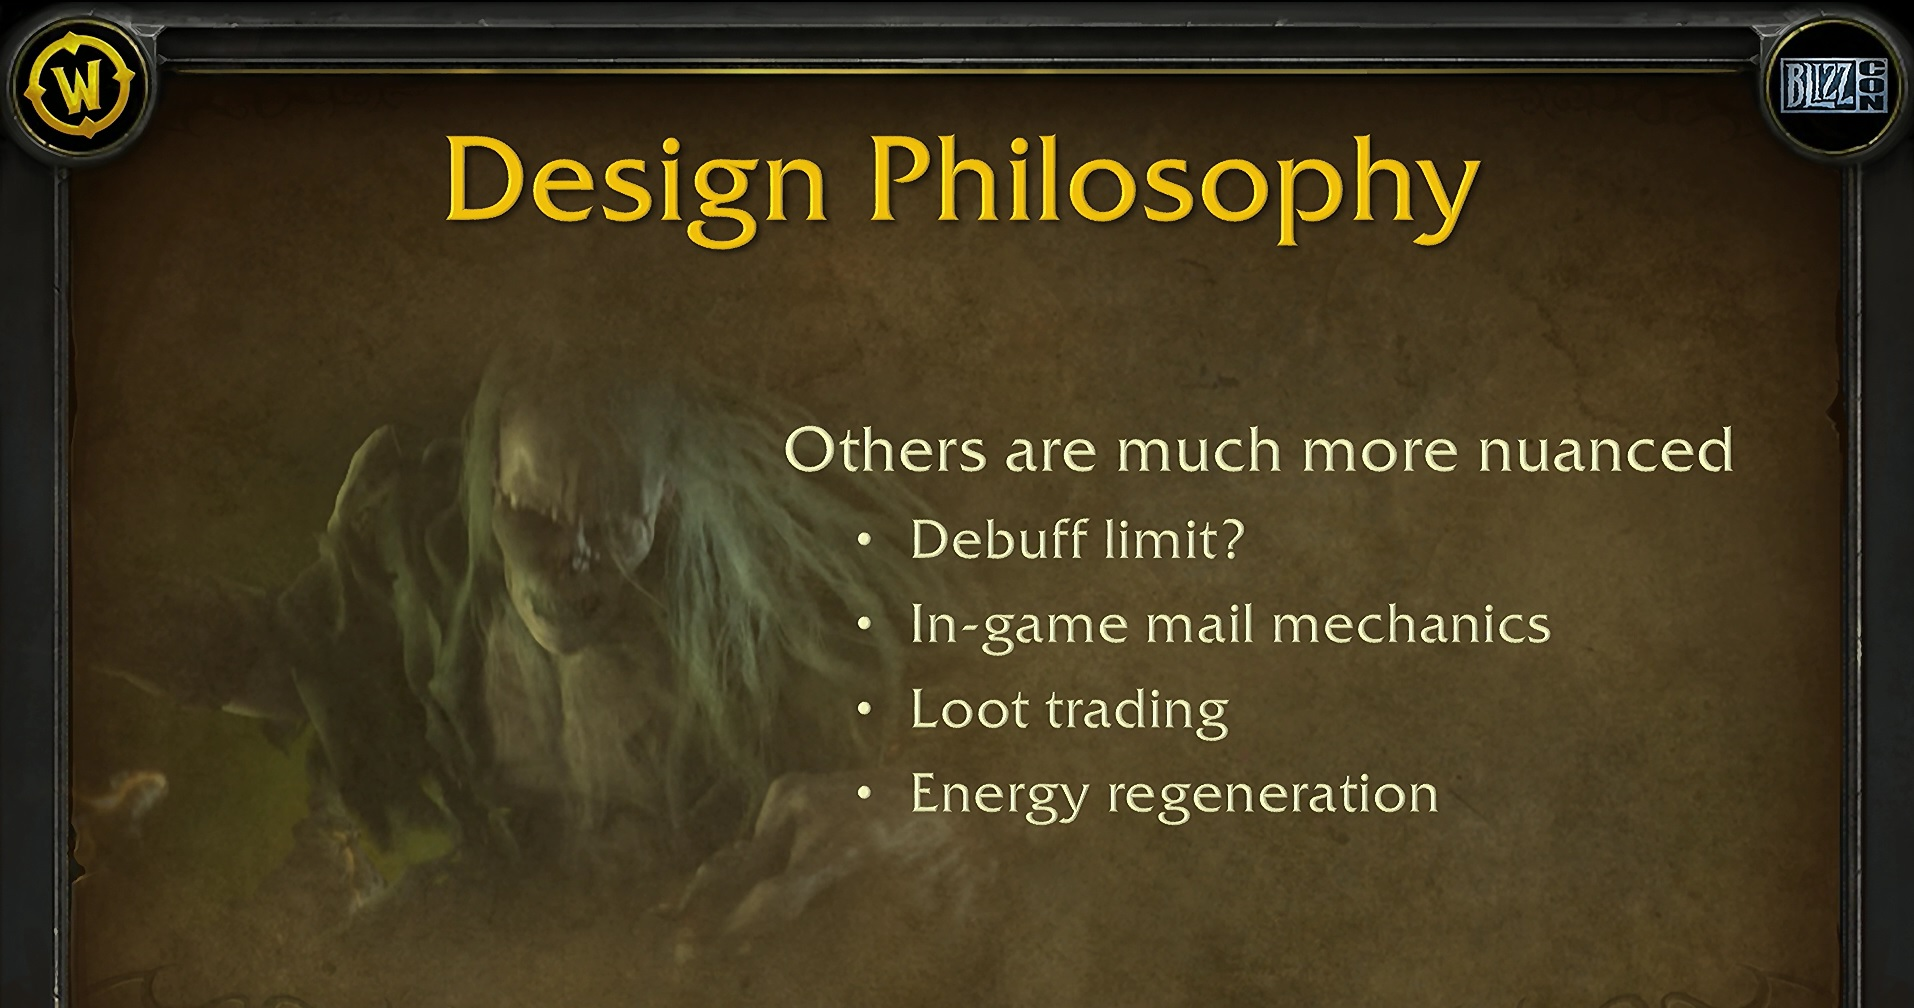 WoW Design Philosophy Debuff Limit